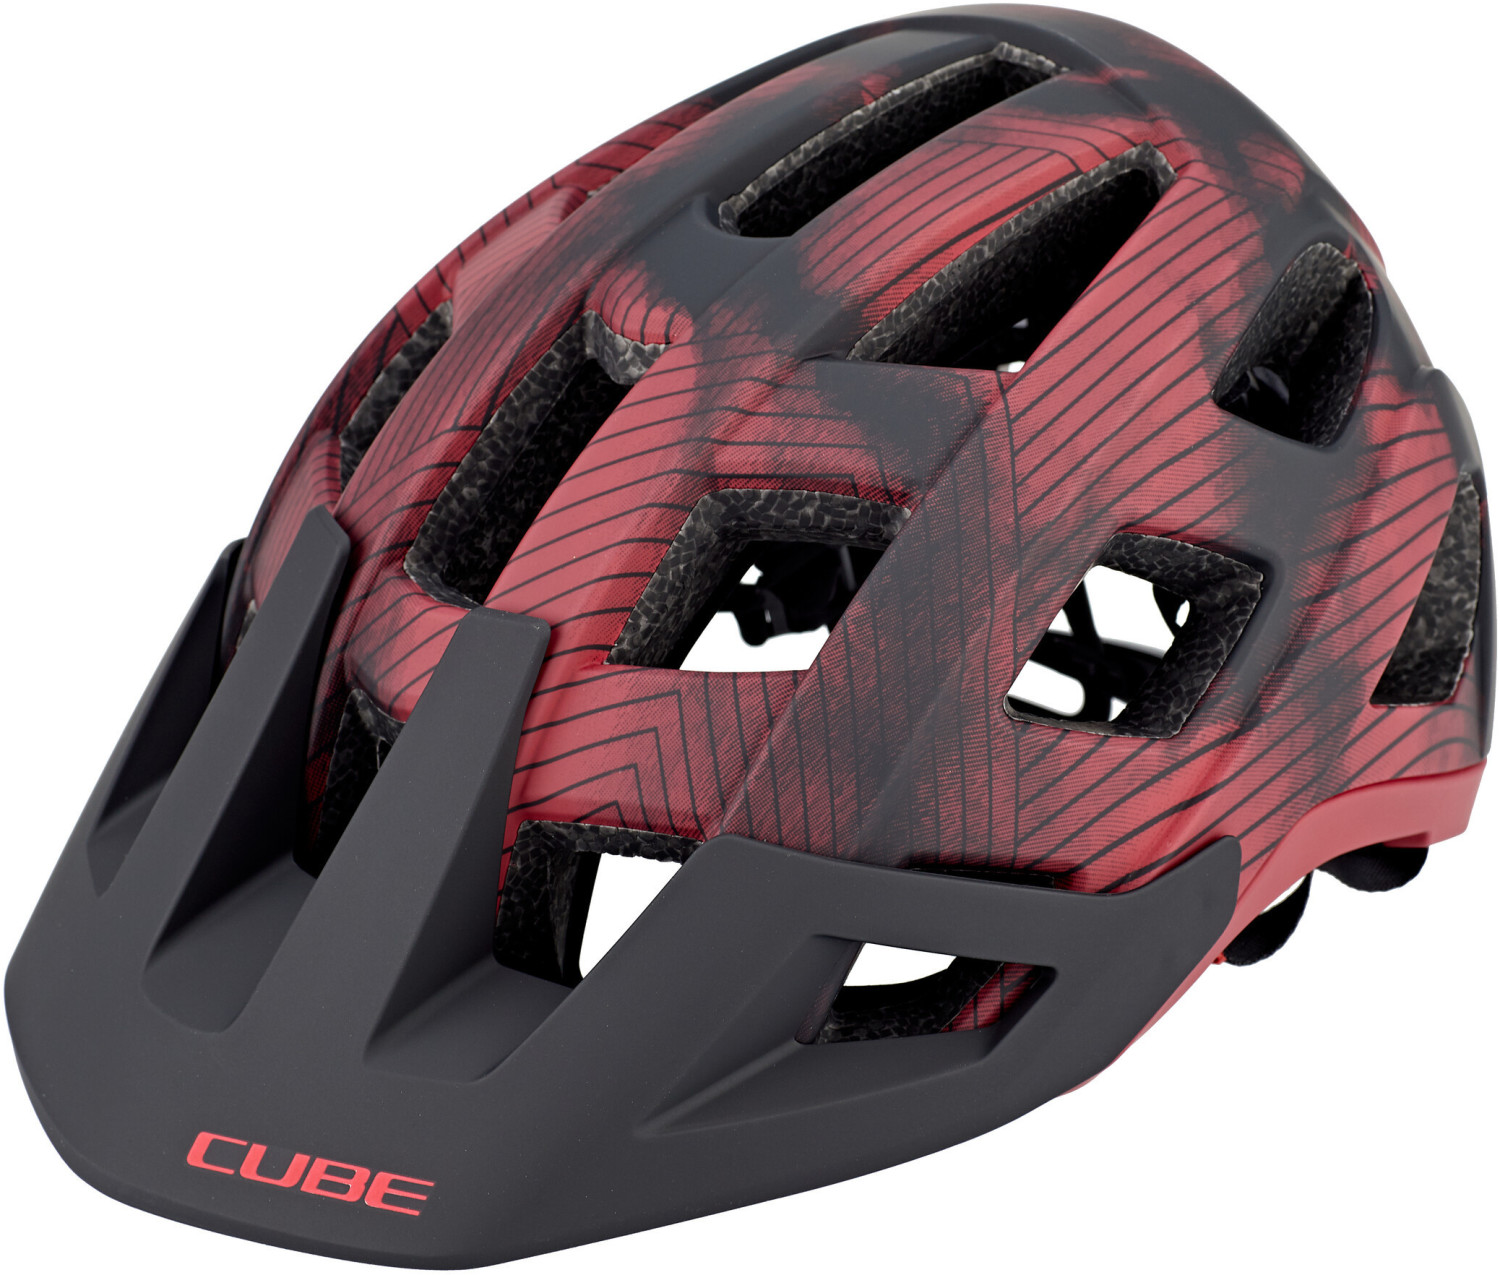 Cube Badger red